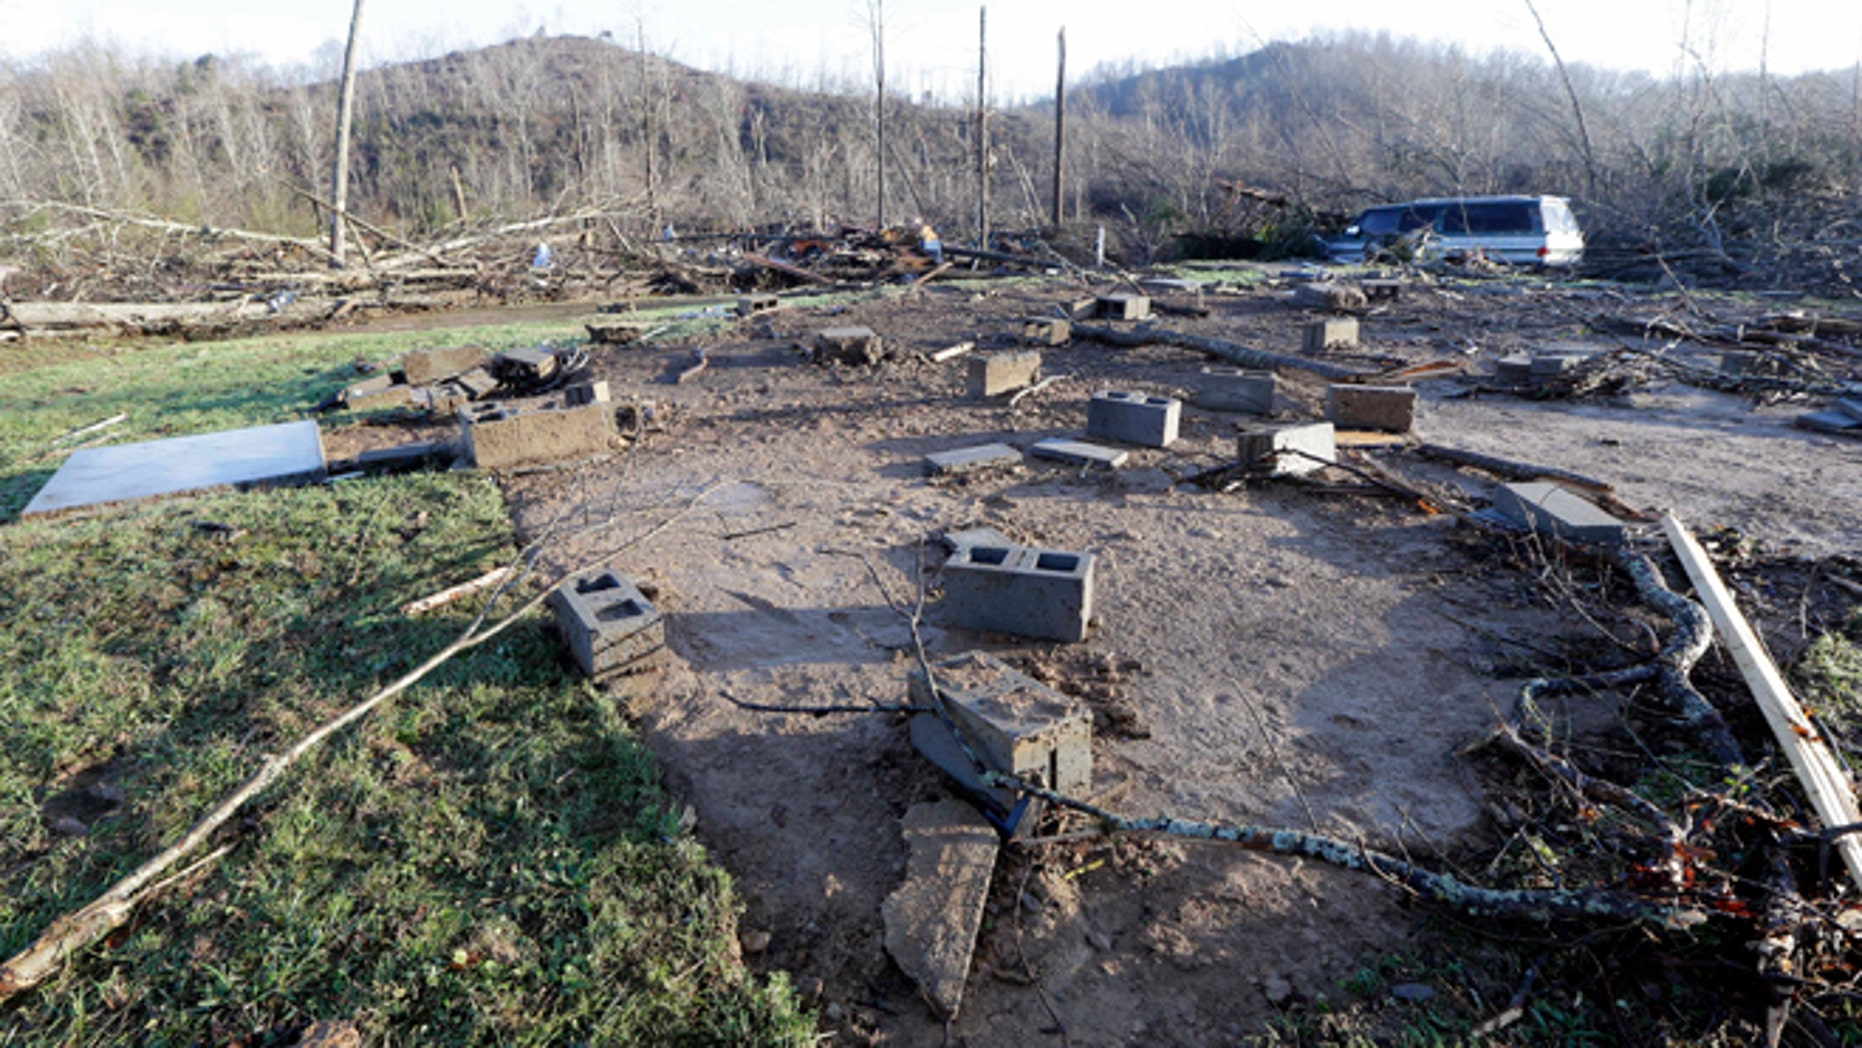 Concrete blocks from the foundation of the home of Antonio Yzaguirre, and his wife, Ann Yzaguirre, show where the house once stood, Thursday, Dec. 24, 2015, after severe storms went through the area Wednesday night near Linden, Tenn. The couple was killed in the storm. (AP Photo/Mark Humphrey)